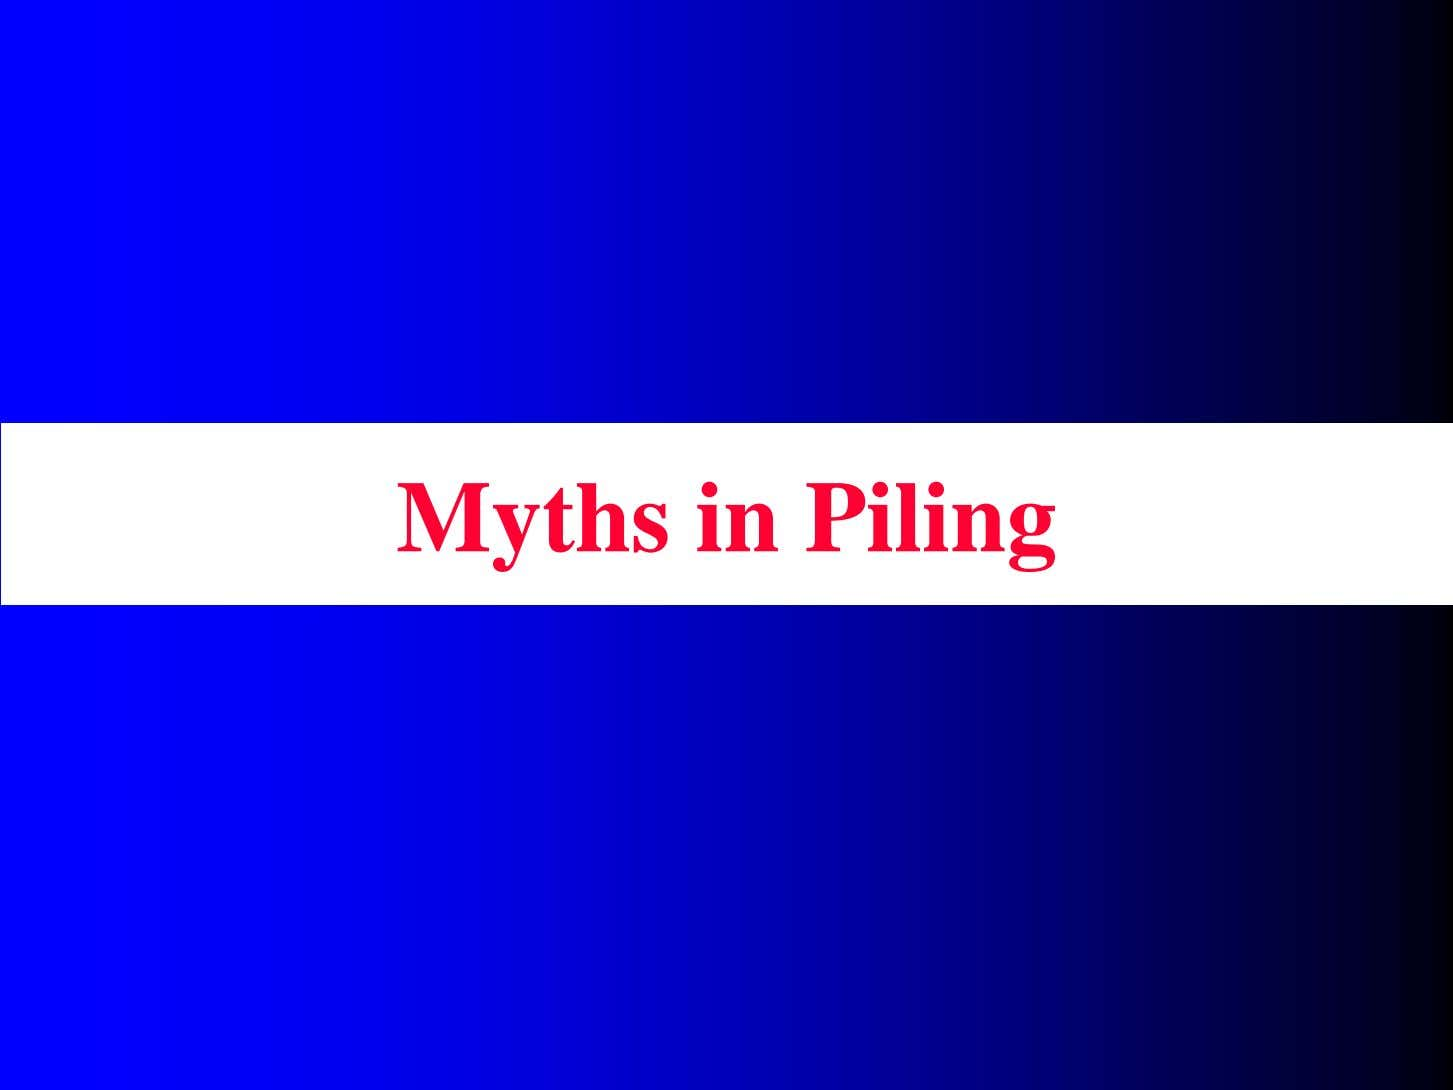 Myths in Piling